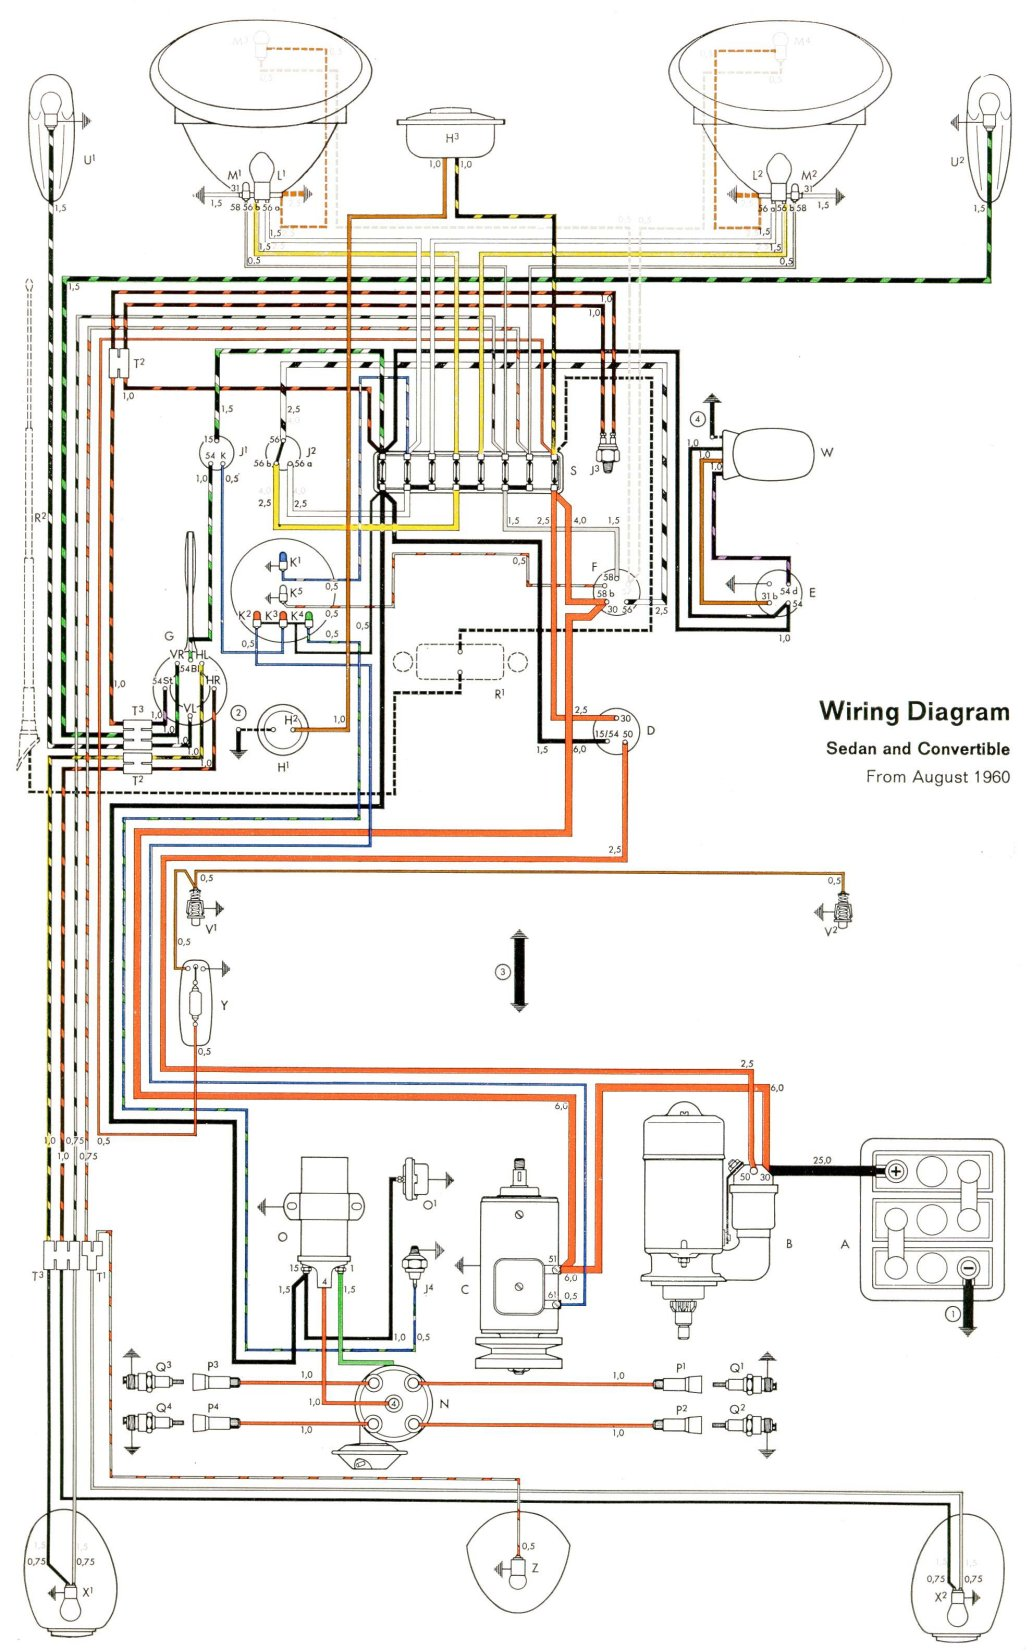 hight resolution of 77 vw wiring diagram wiring diagram yer 77 vw wiring diagram